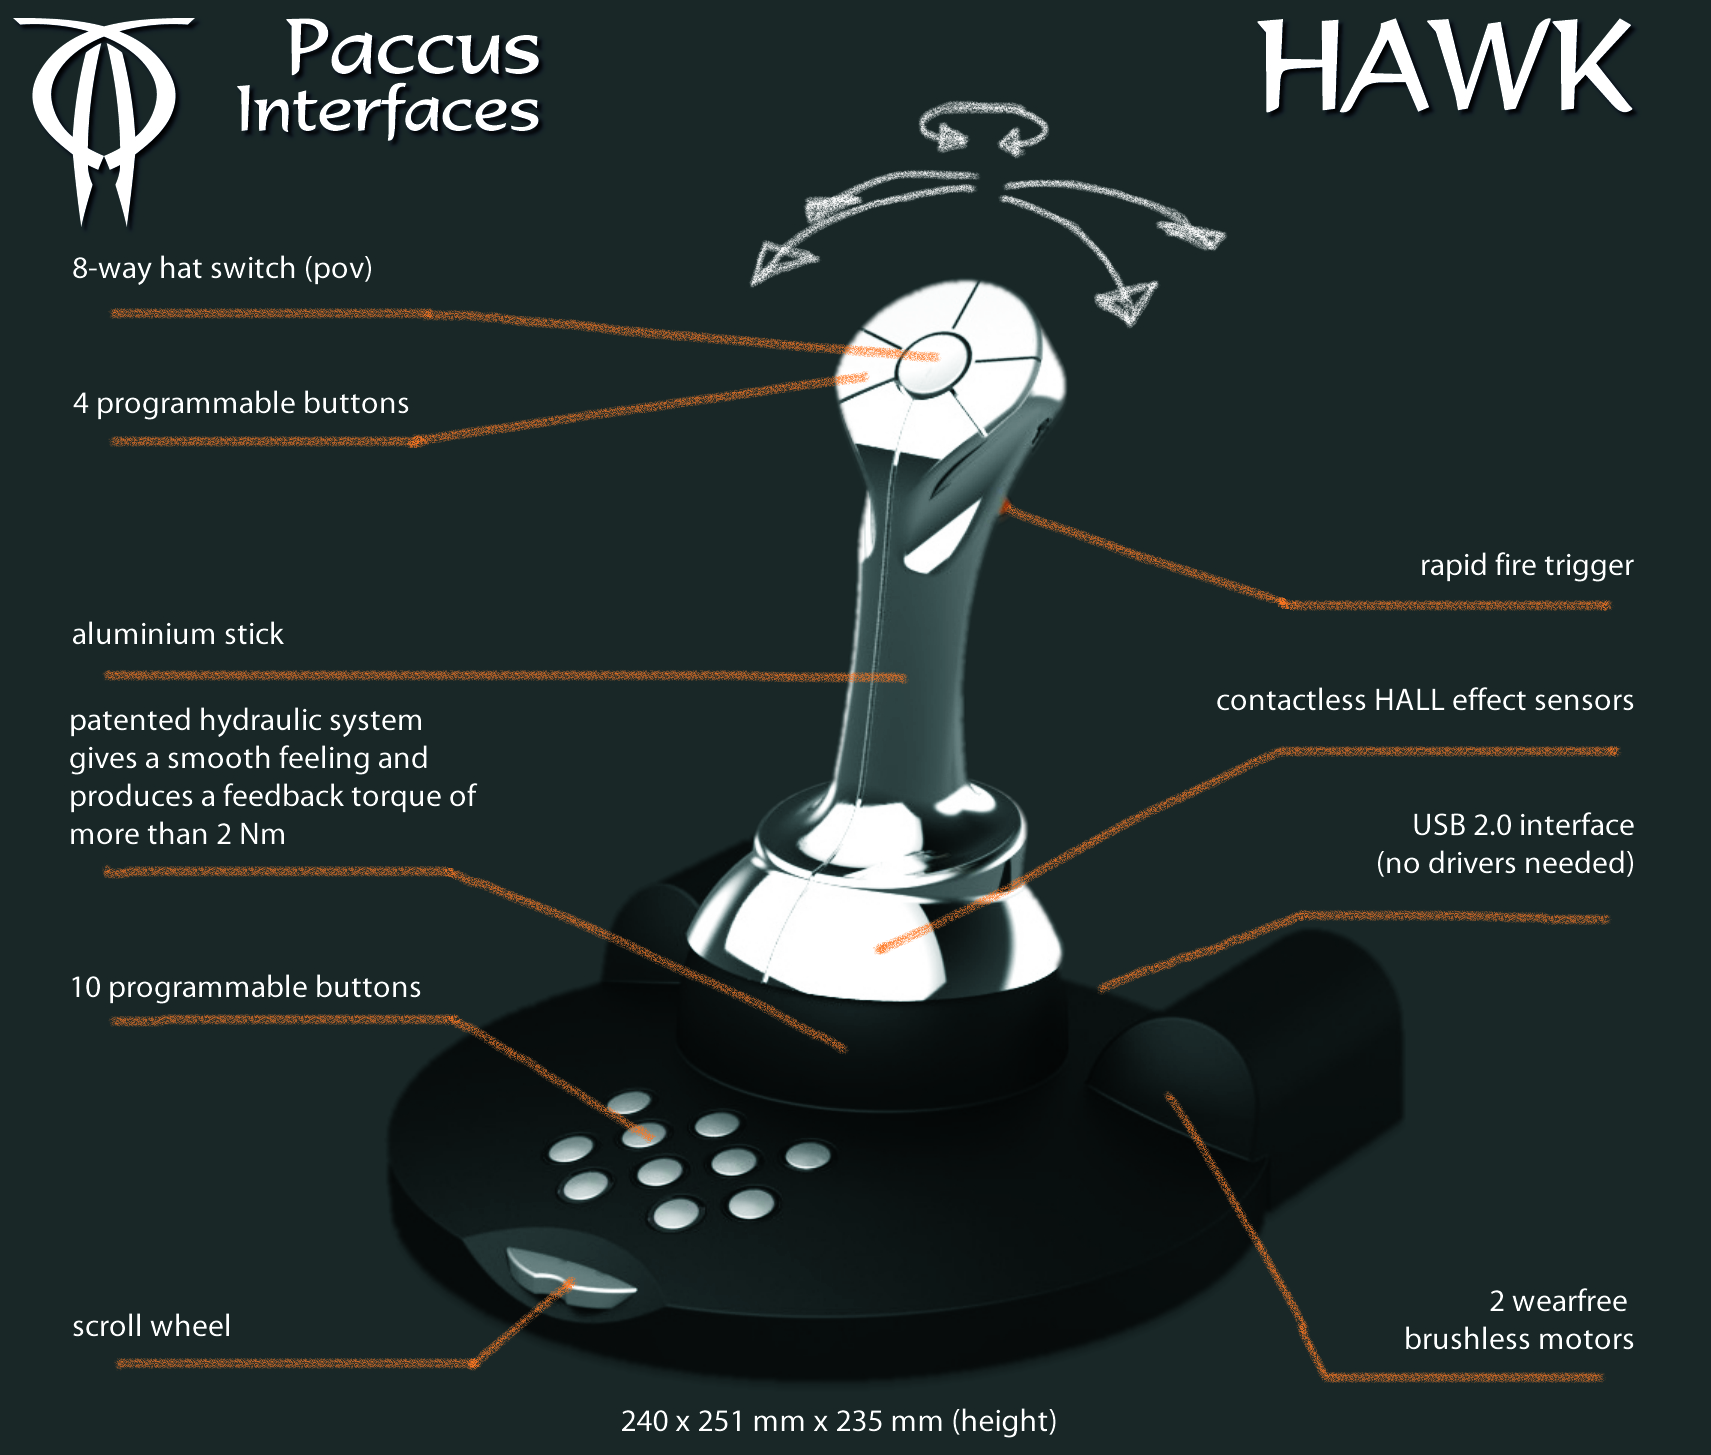 Hawk hydraulic force feedback joystick with descriptions